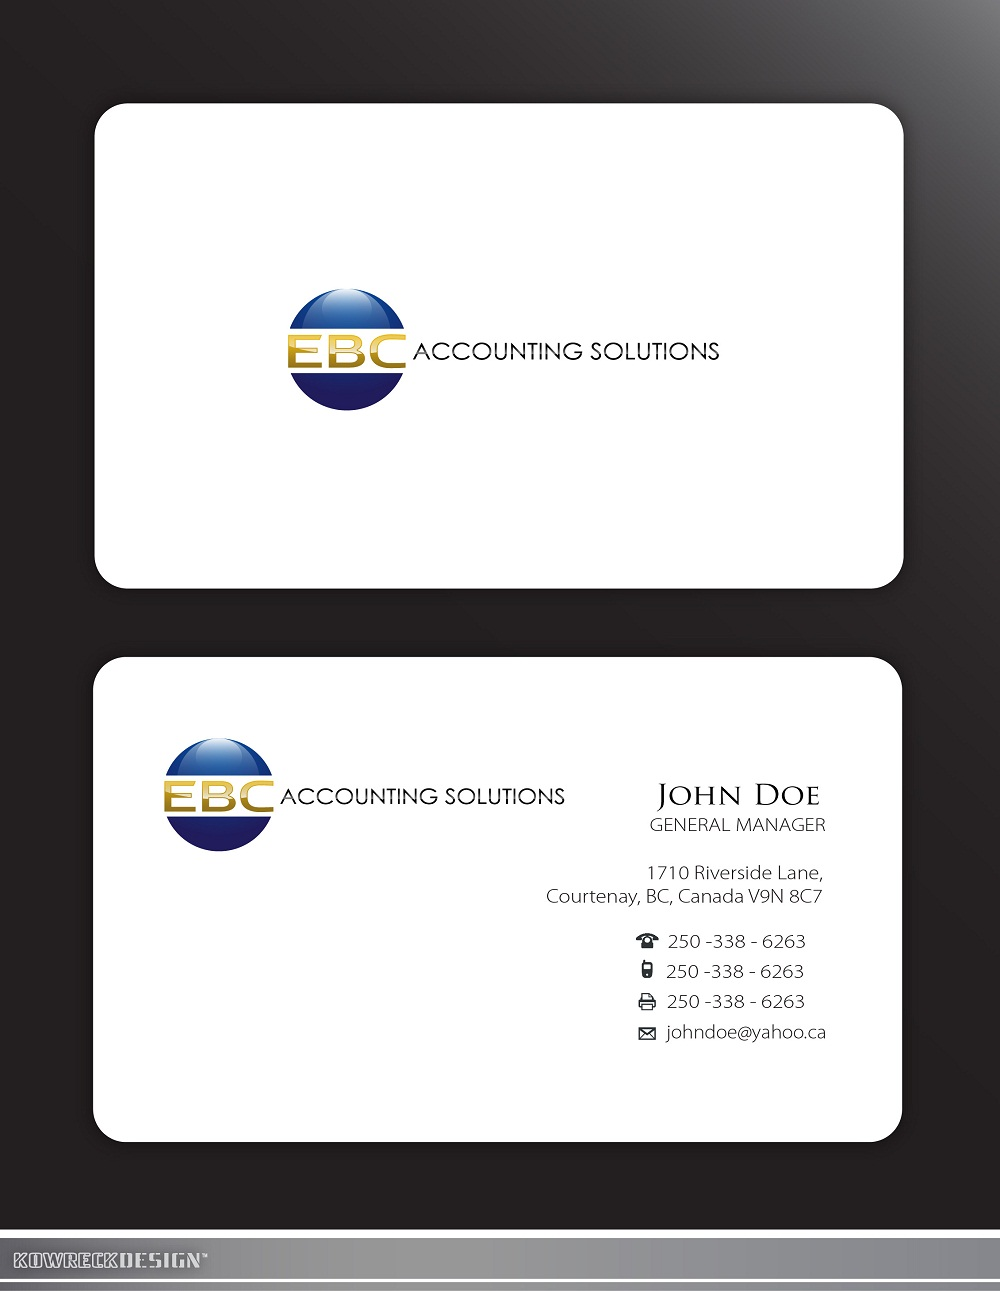 Logo Design by kowreck - Entry No. 203 in the Logo Design Contest New Logo Design for EBC Accounting Solutions.